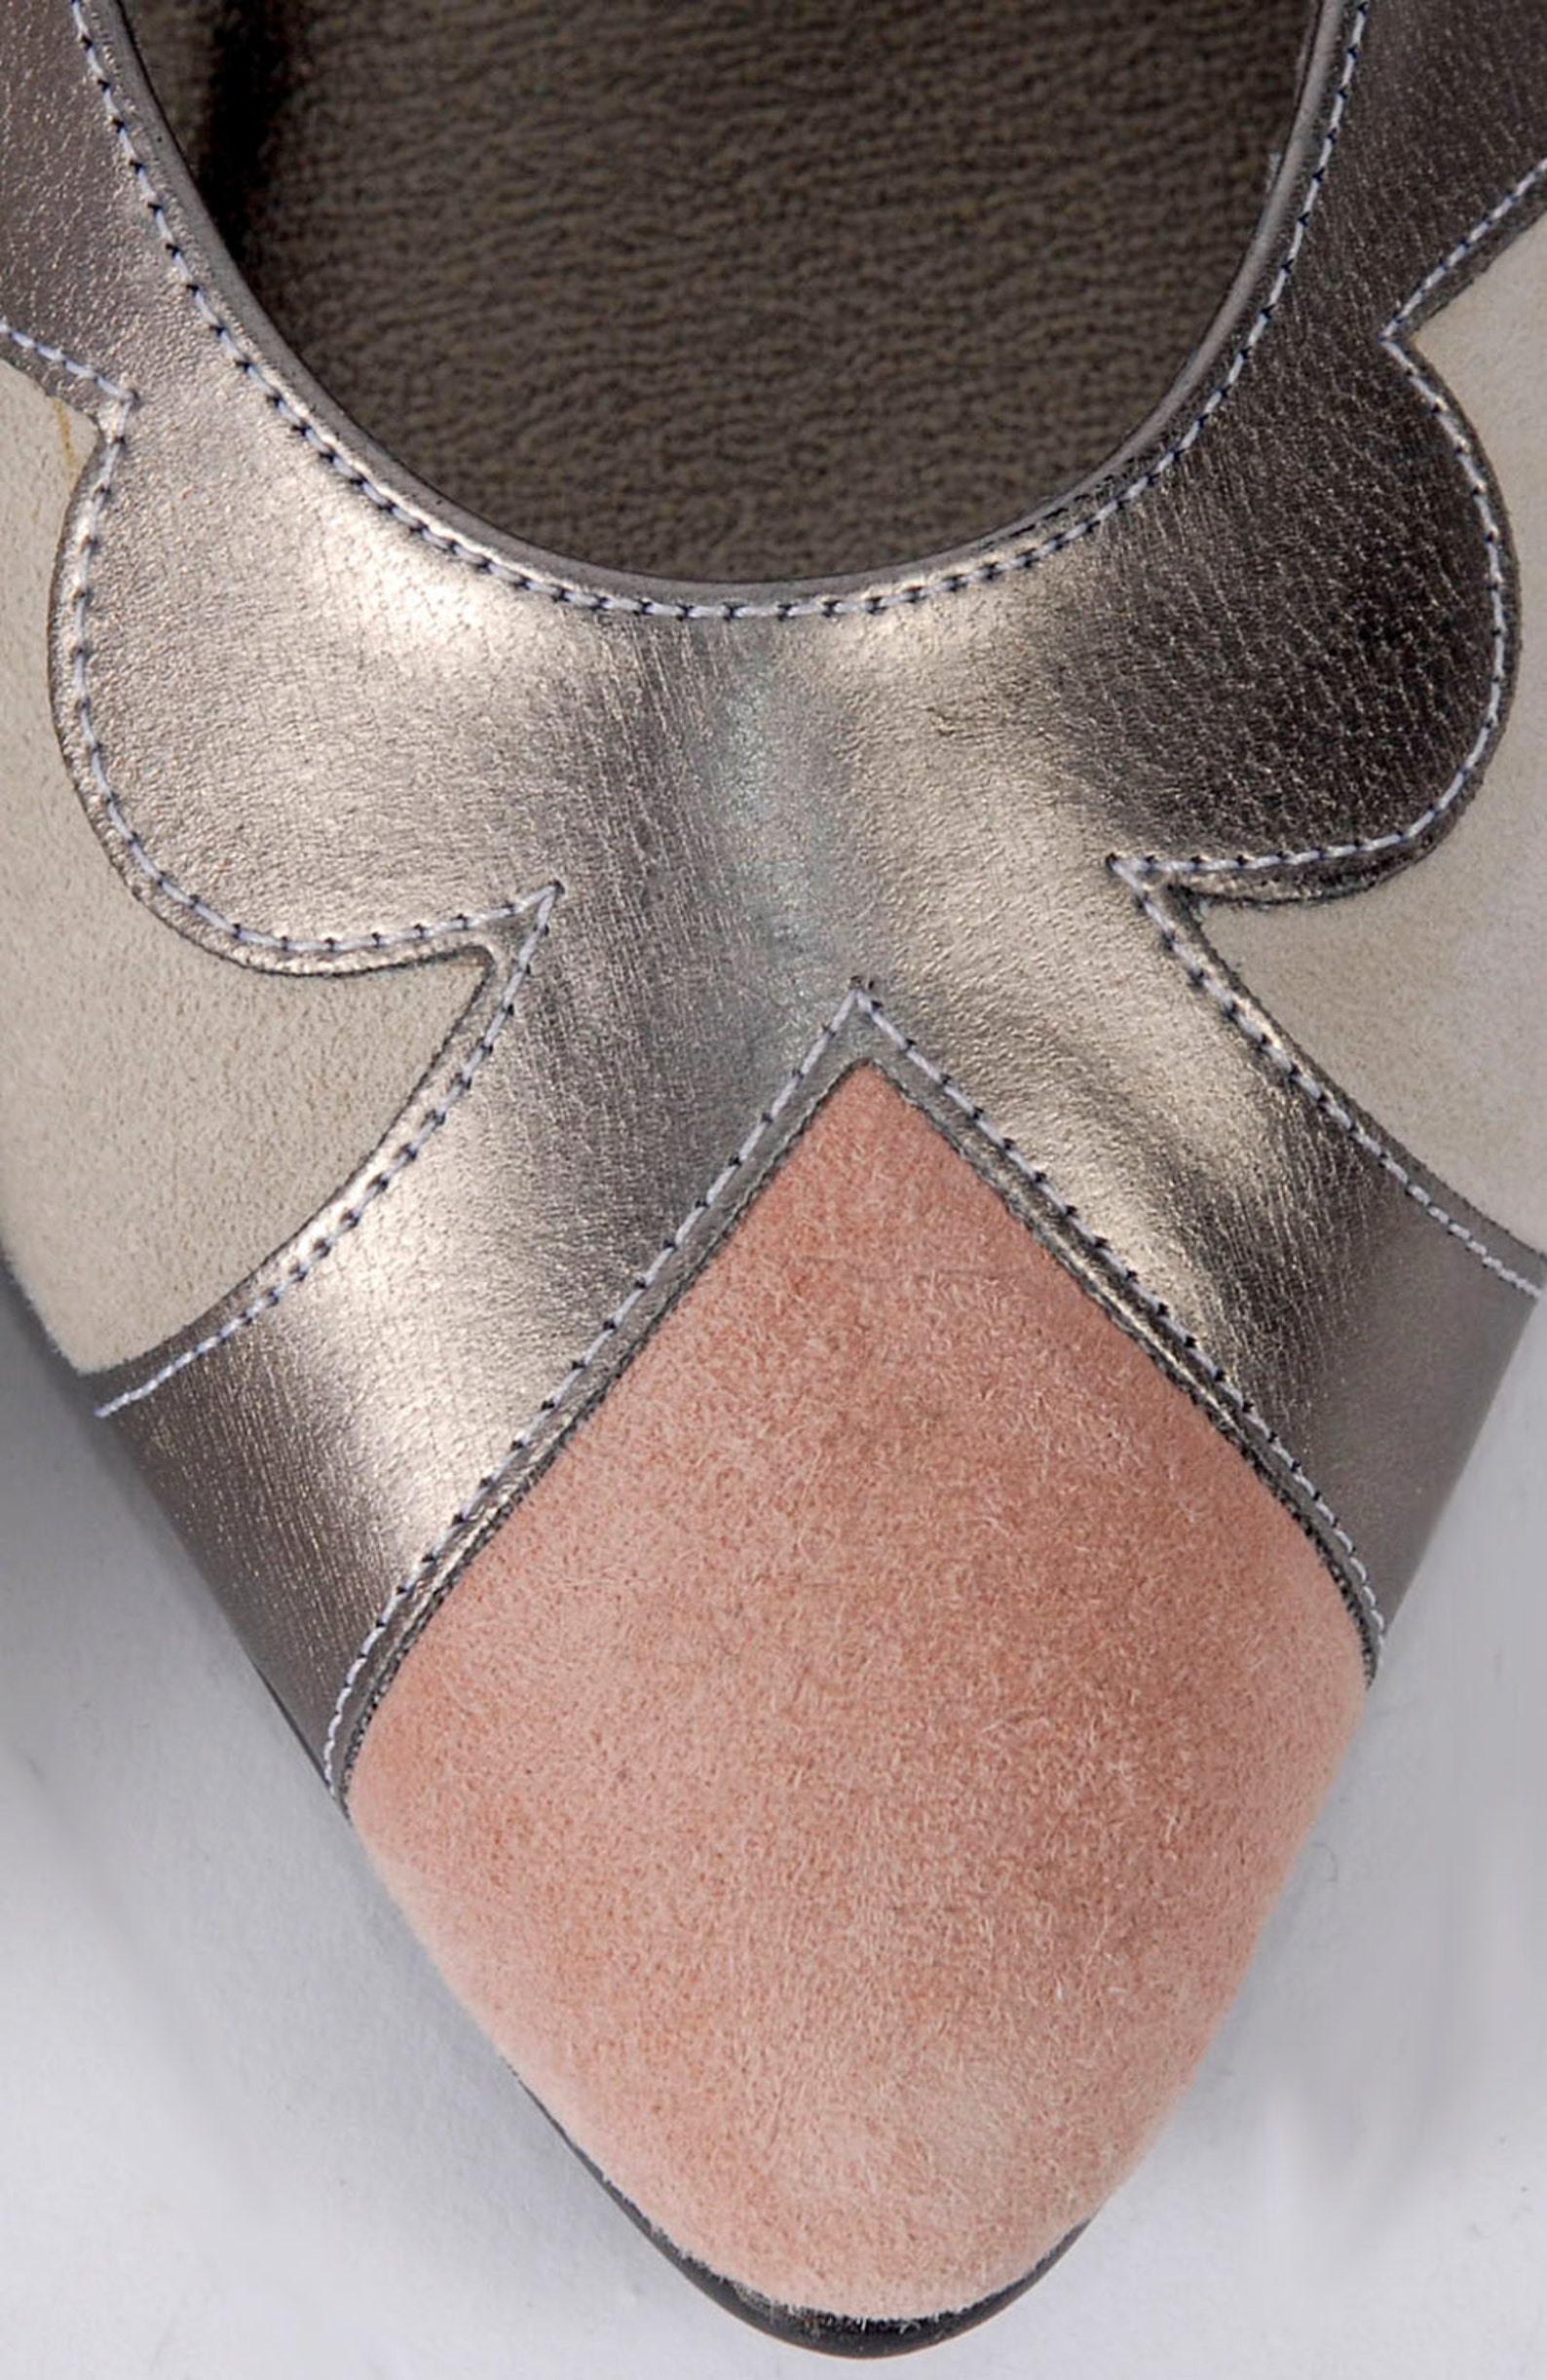 vintage 80s shoes - 80s ballet flats - 80s flats - pink taupe cream silver - leather flats - pointed toes - 7 - nos - nib - new